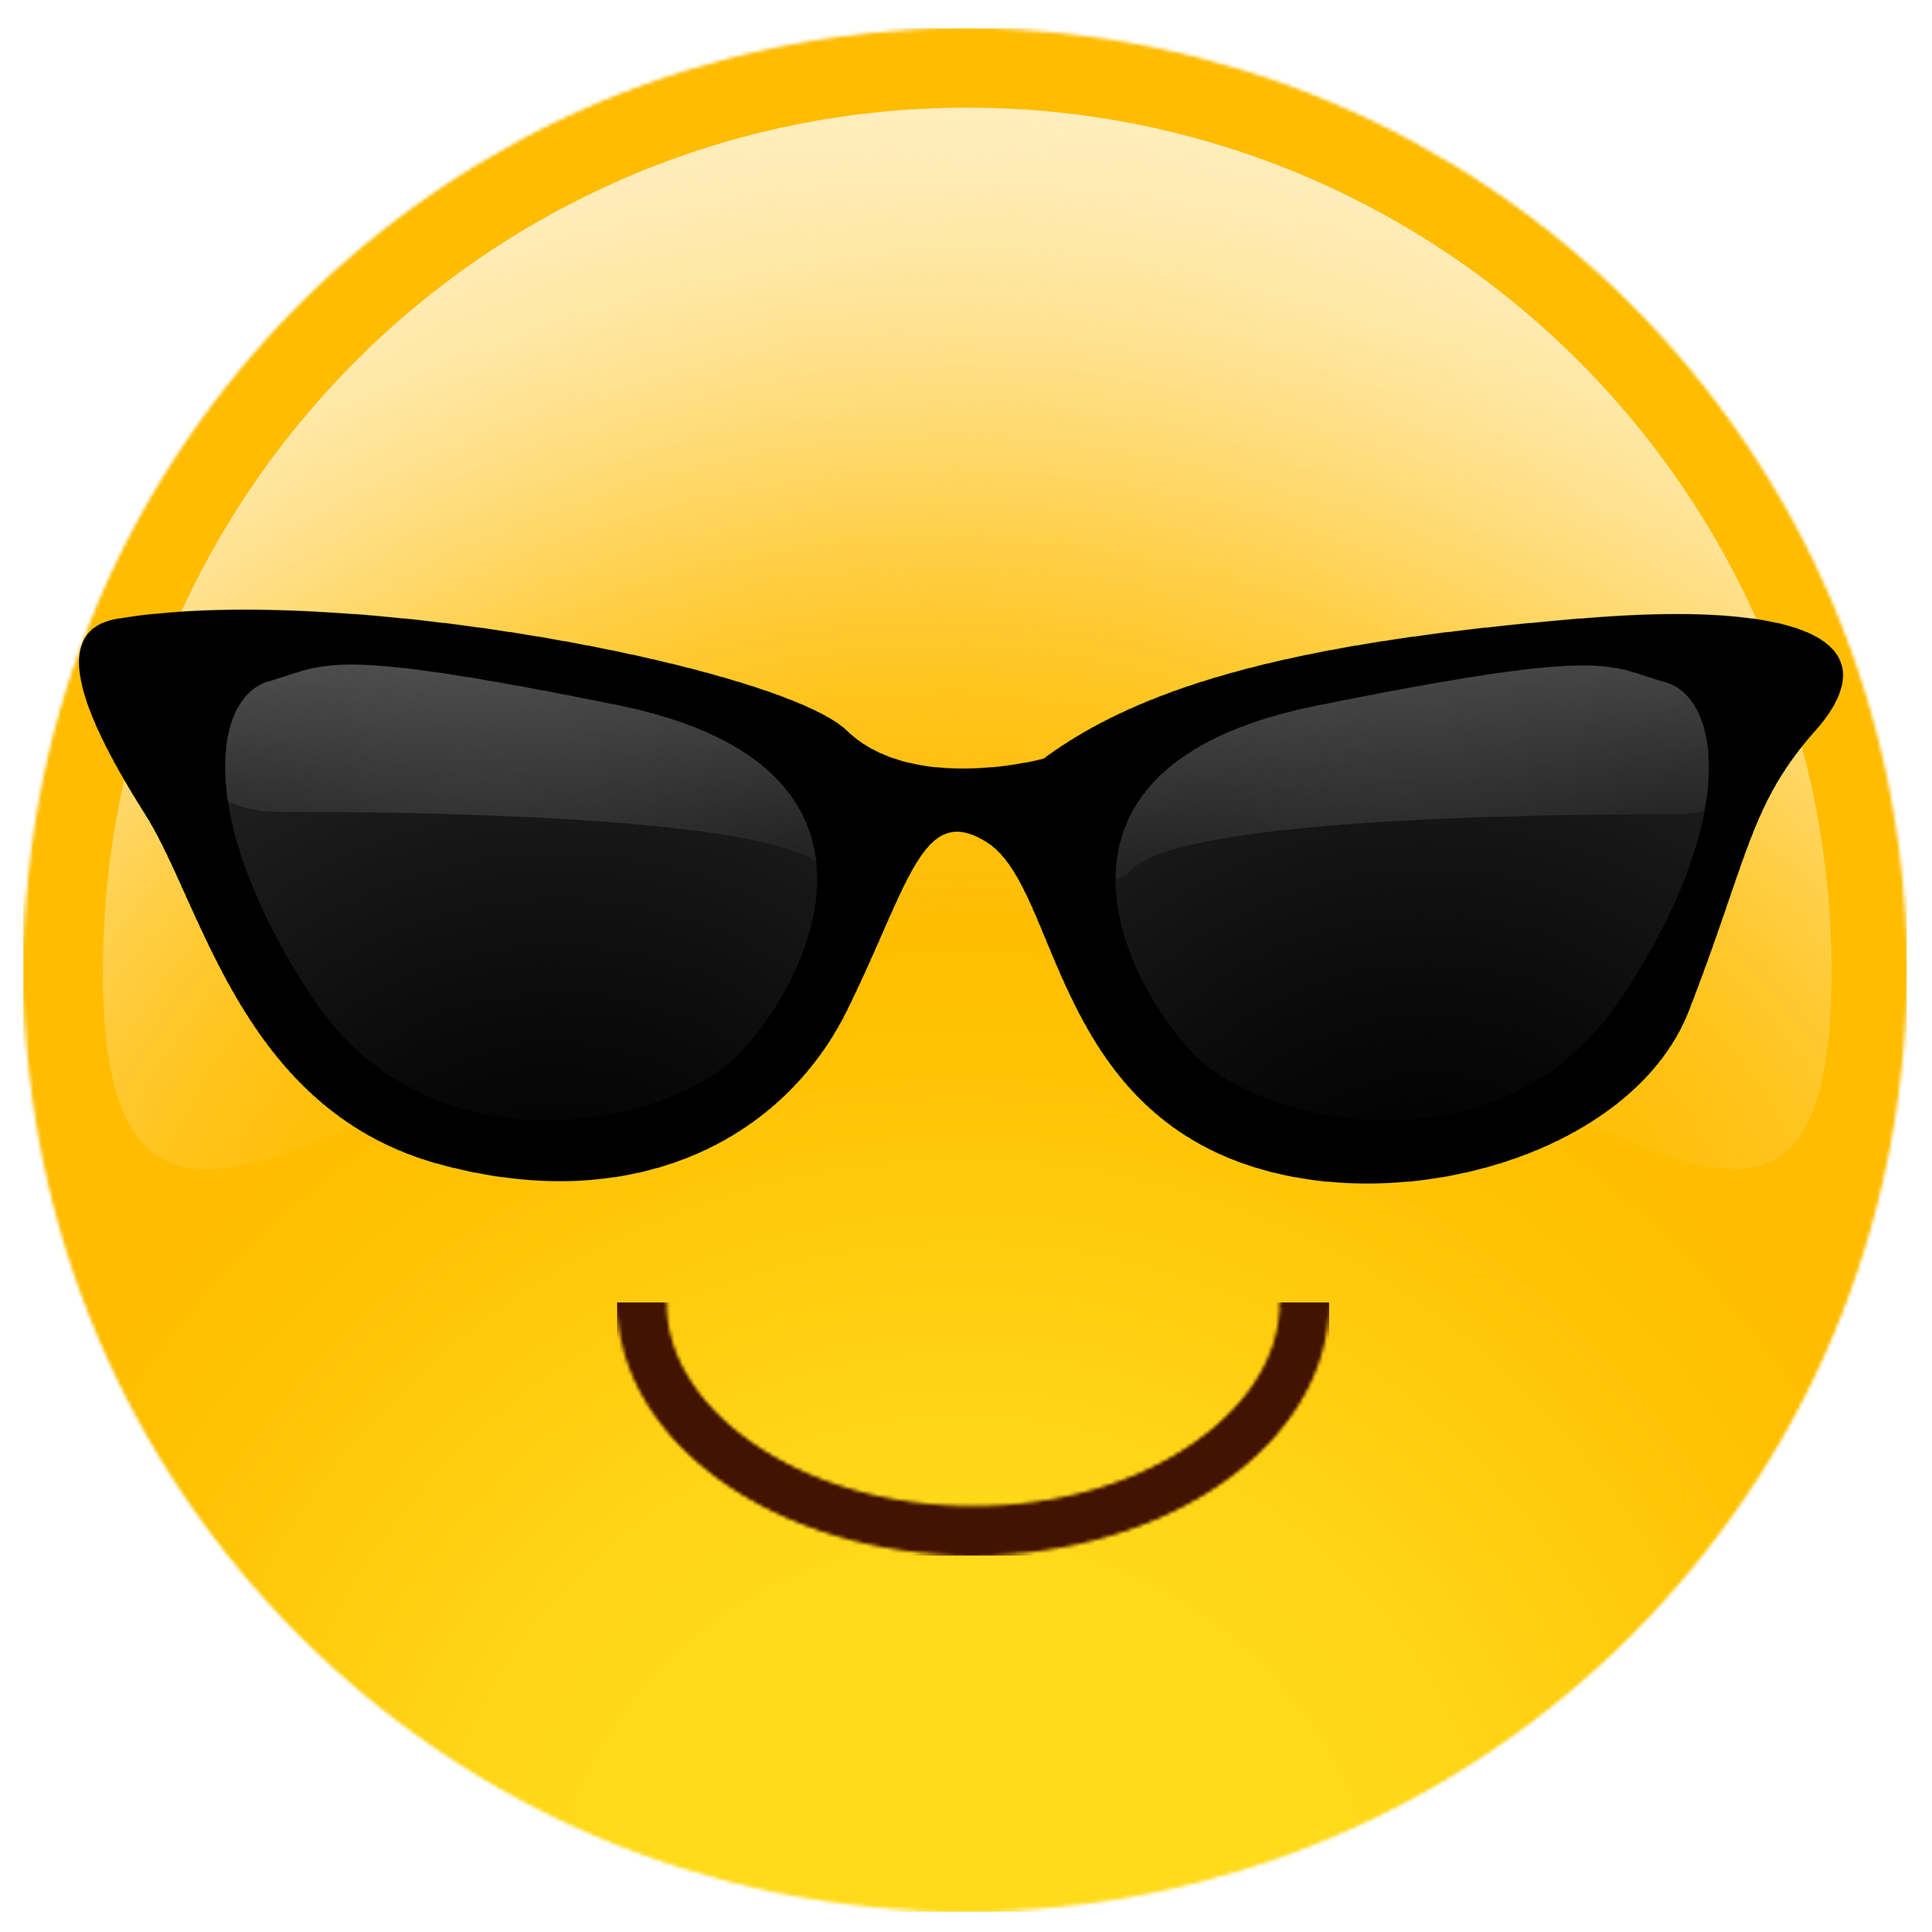 Emoji cutouts pinterest big. Monkey clipart sunglasses